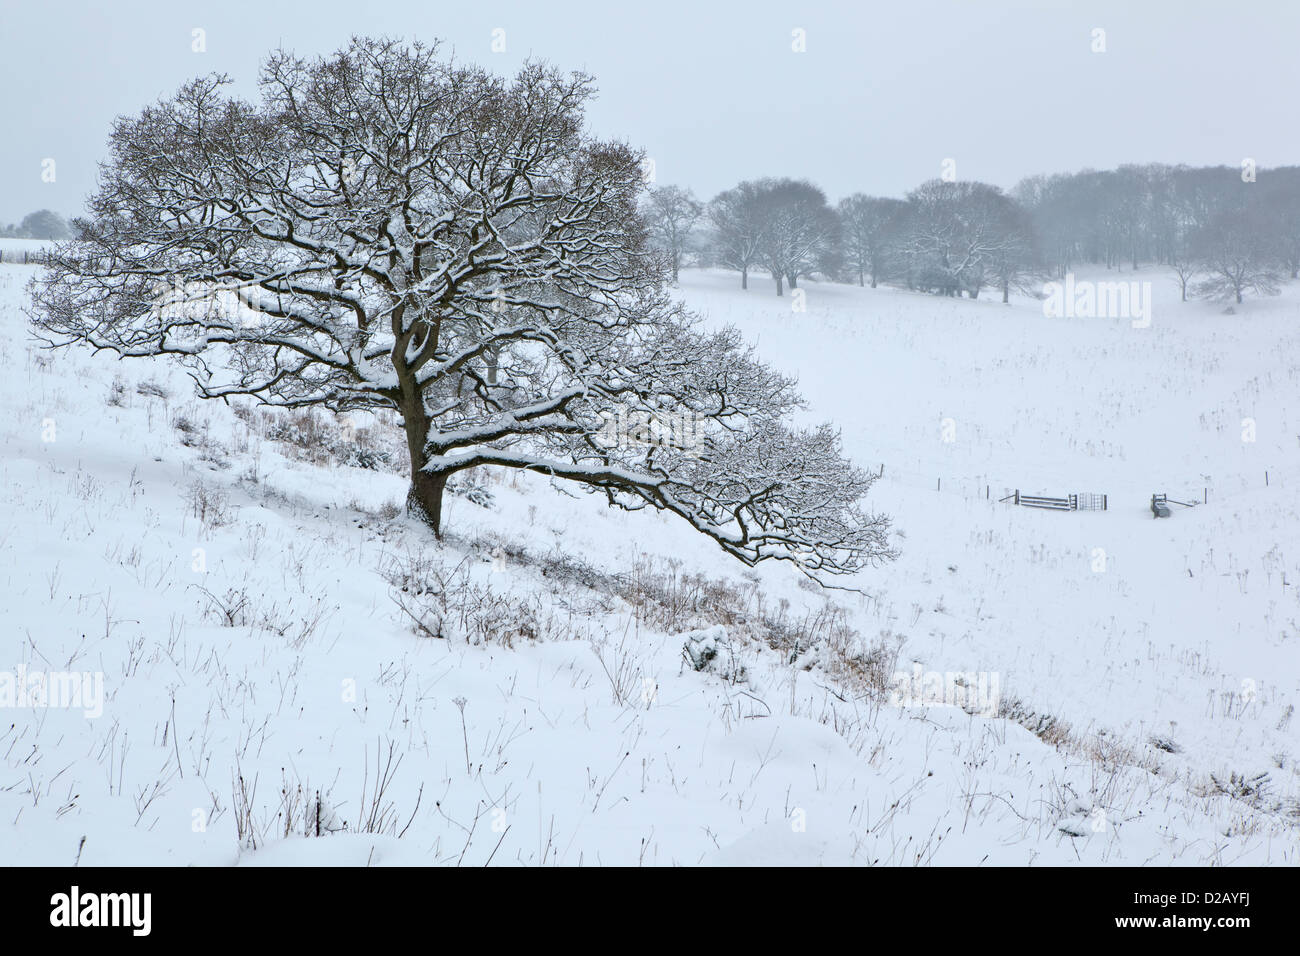 Friday January 18th 2013, snow falling for most of the day has covered the Wiltshire downland with a blanket of - Stock Image